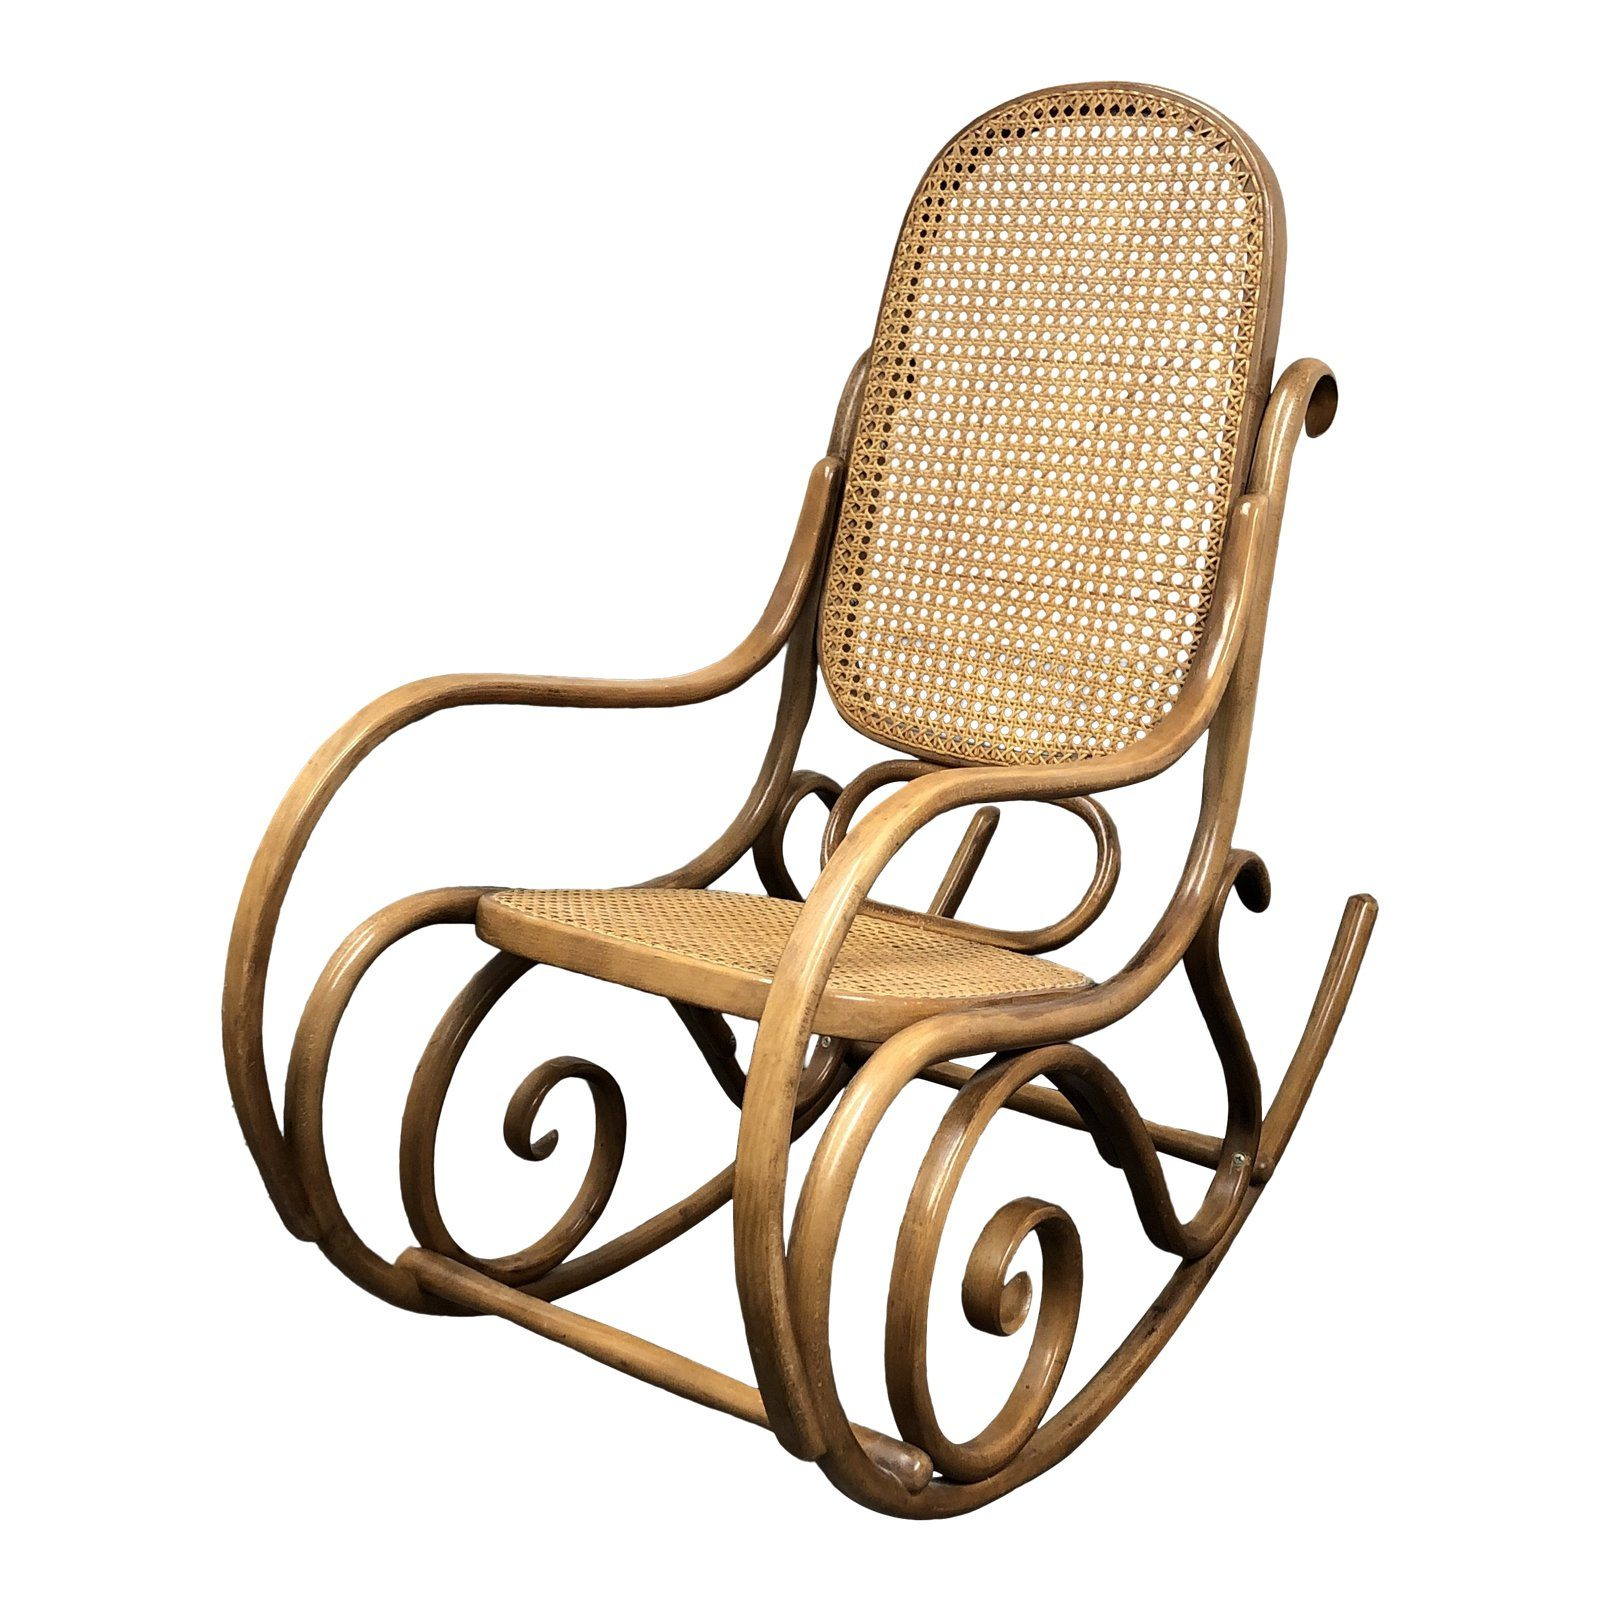 Thonet No 10 Bentwood Cane Rocking Chair Design Plus